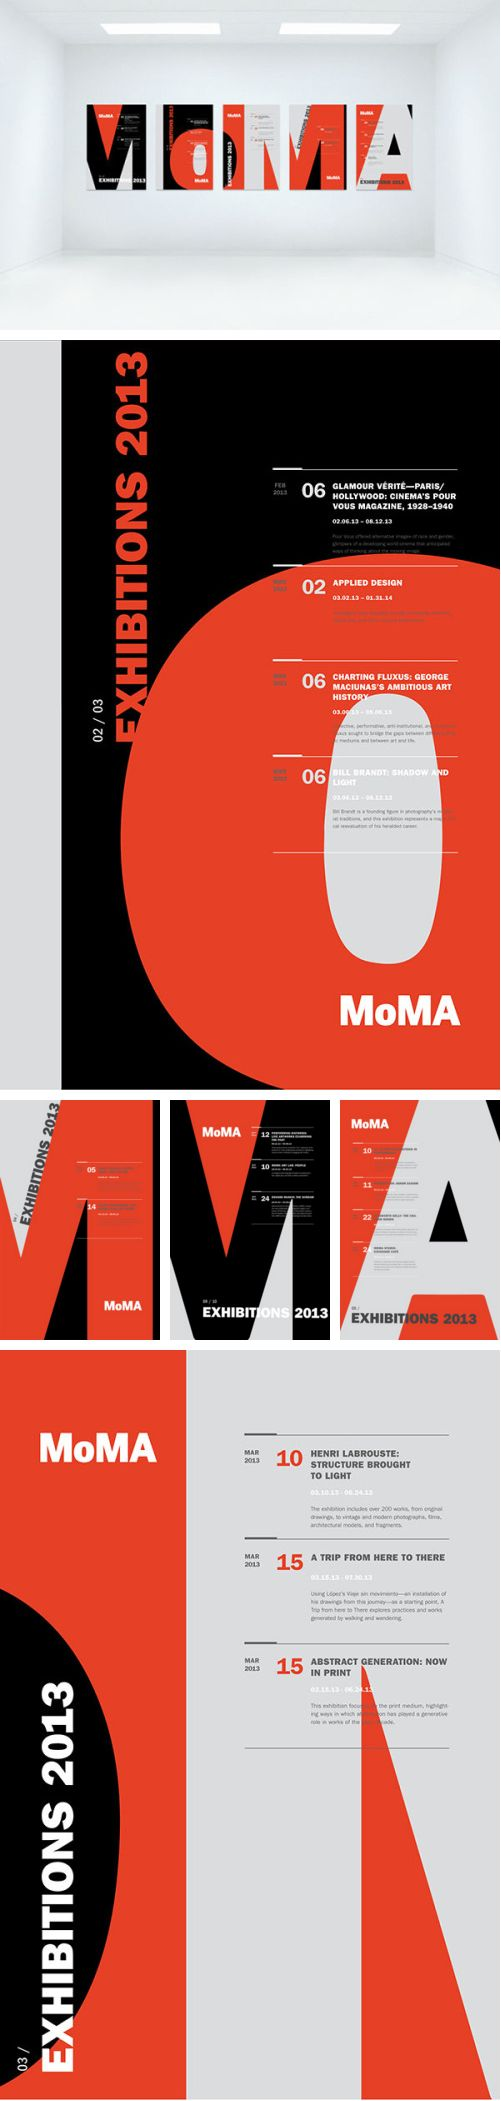 Poster 60 x 80 design - Moma Exhibit Poster Series